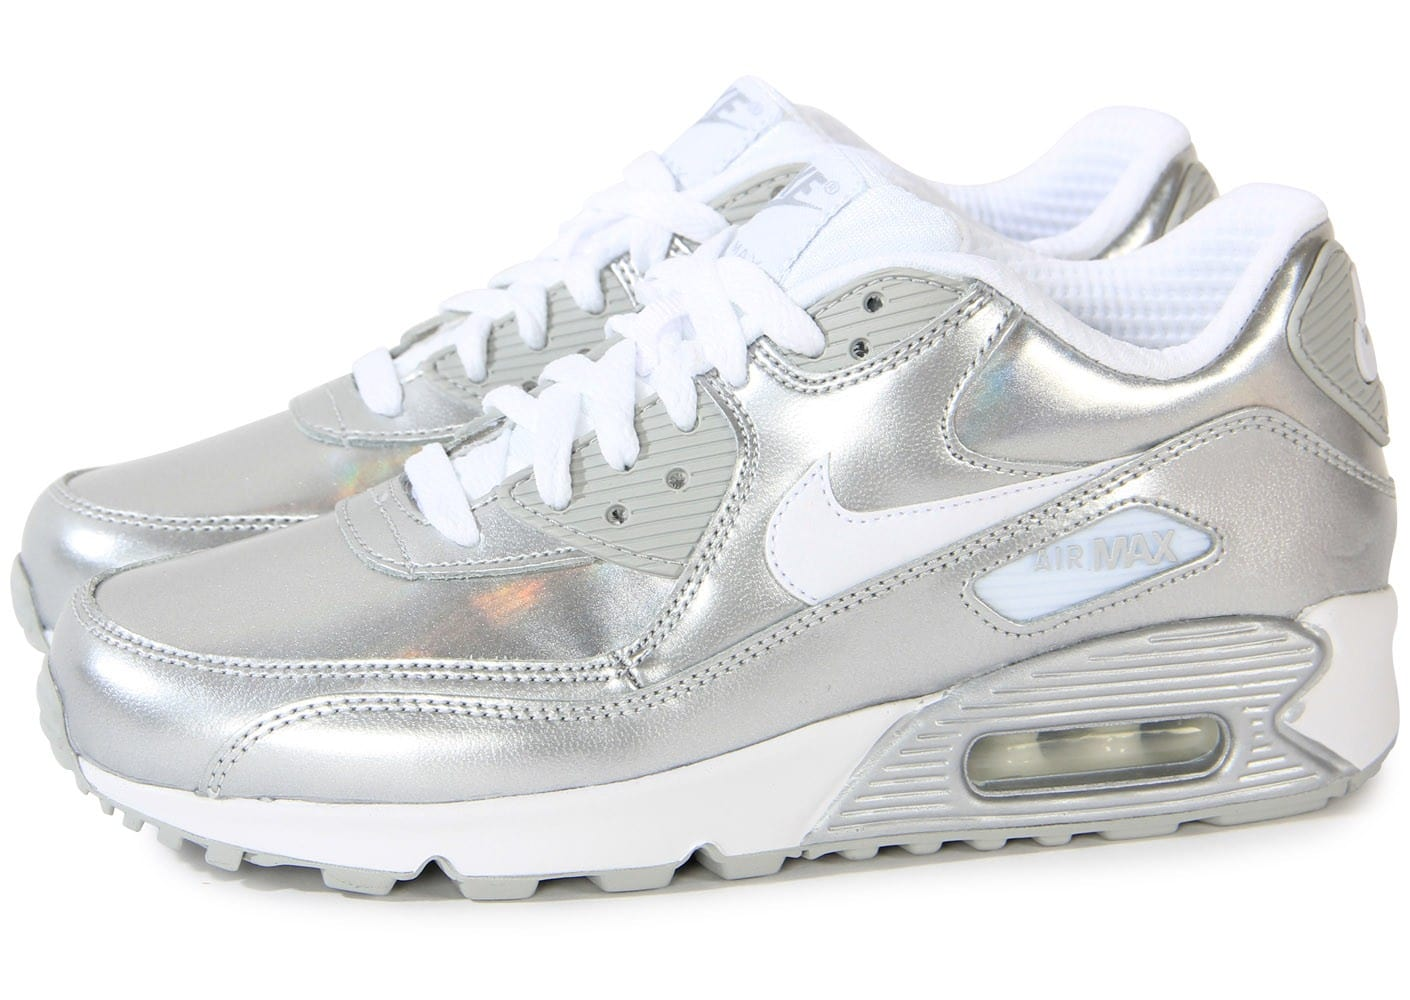 nike air max 90 chaussures blanc gris argent